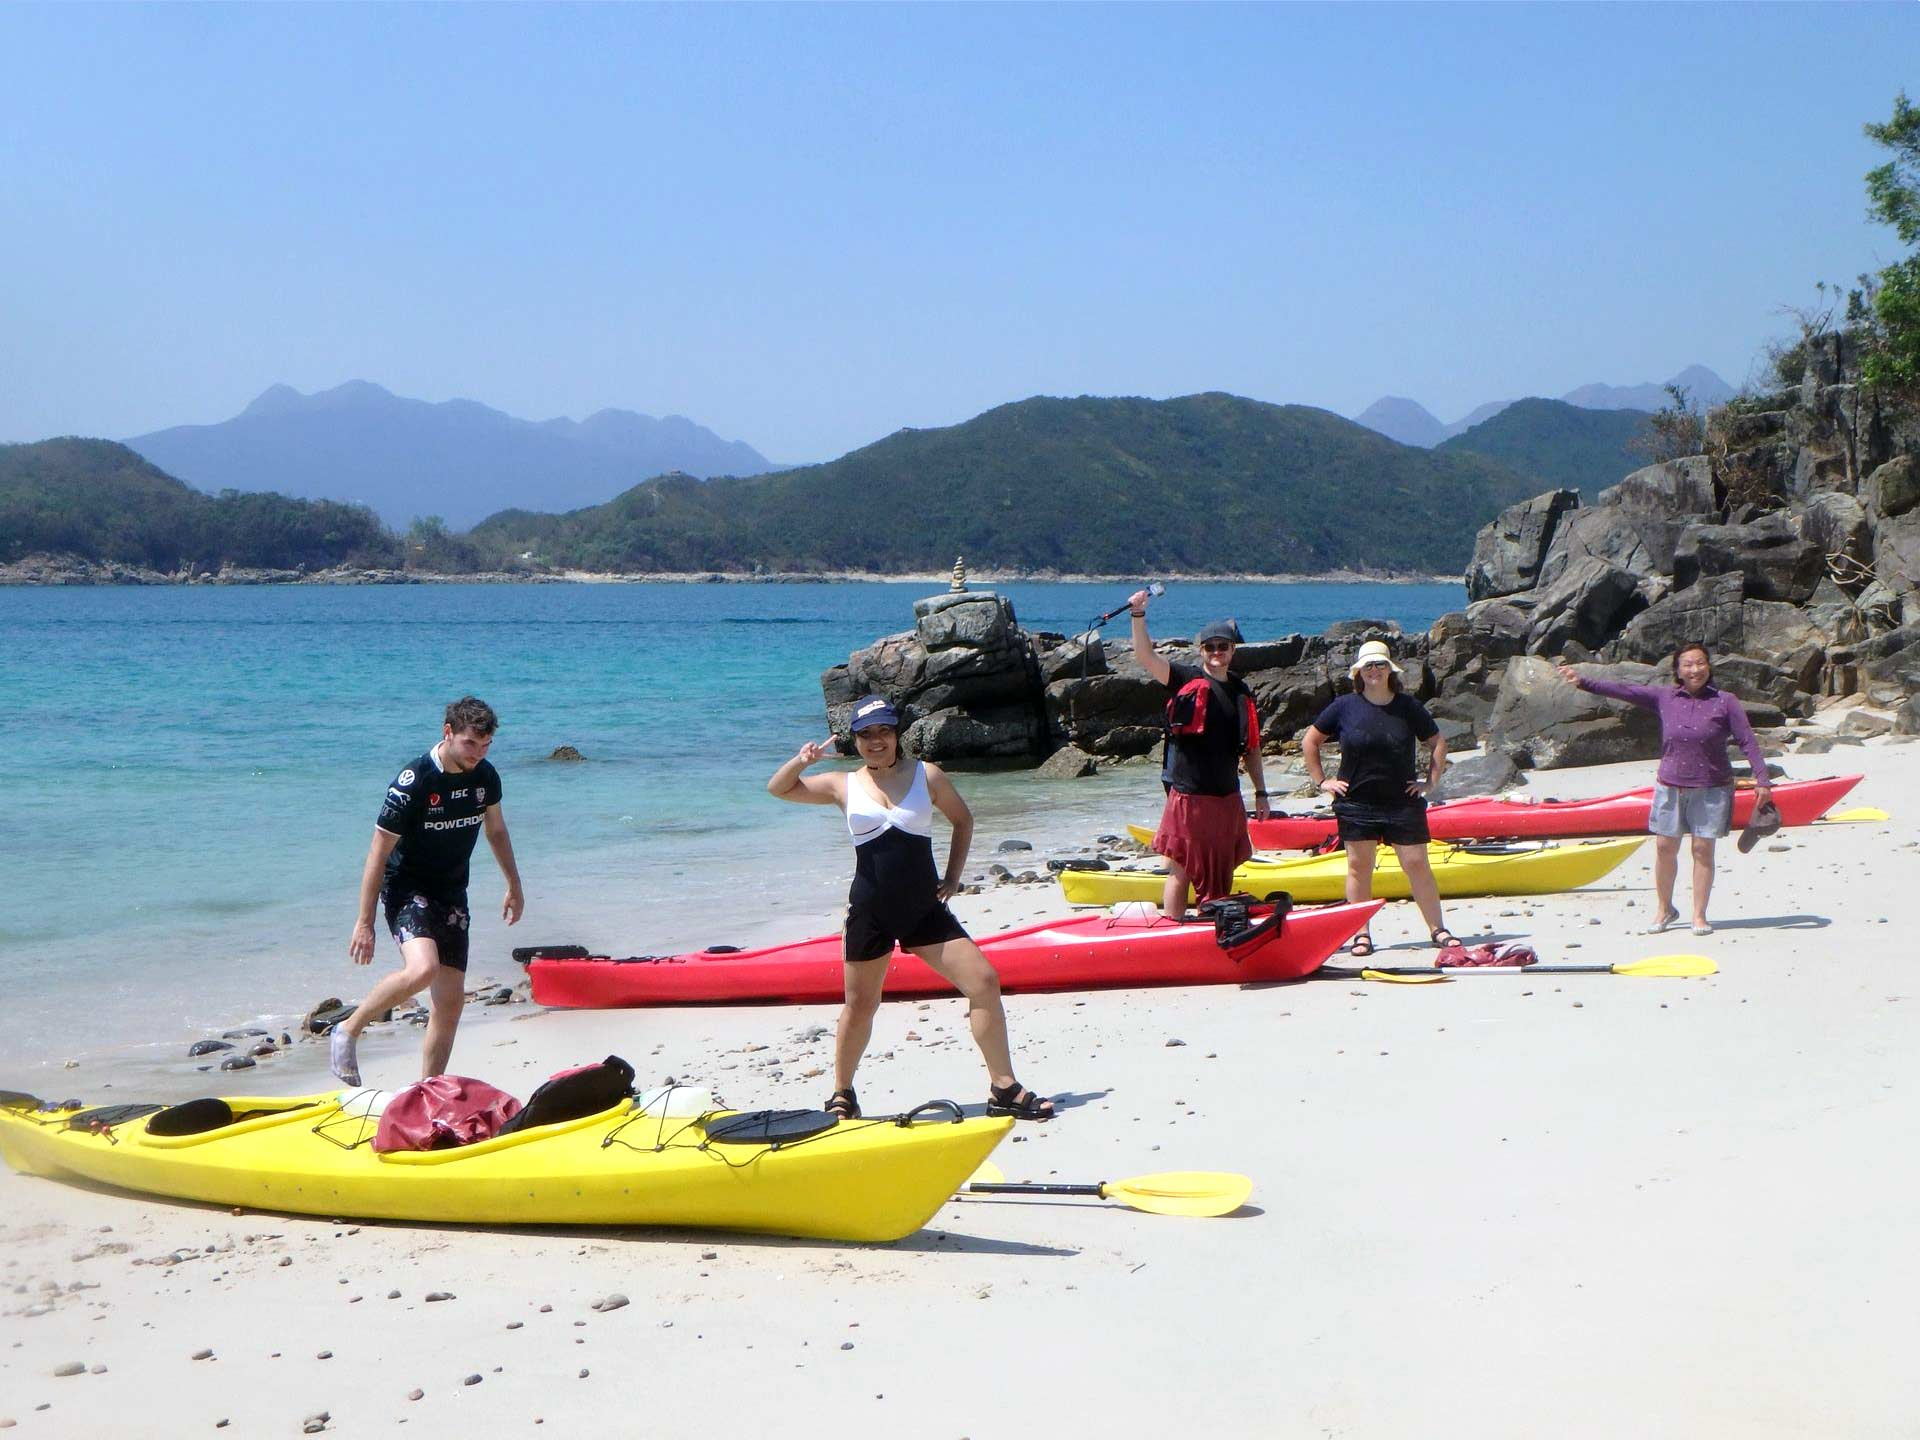 sea-kayak-UNESCO-geopark-beach-Hong-Kong